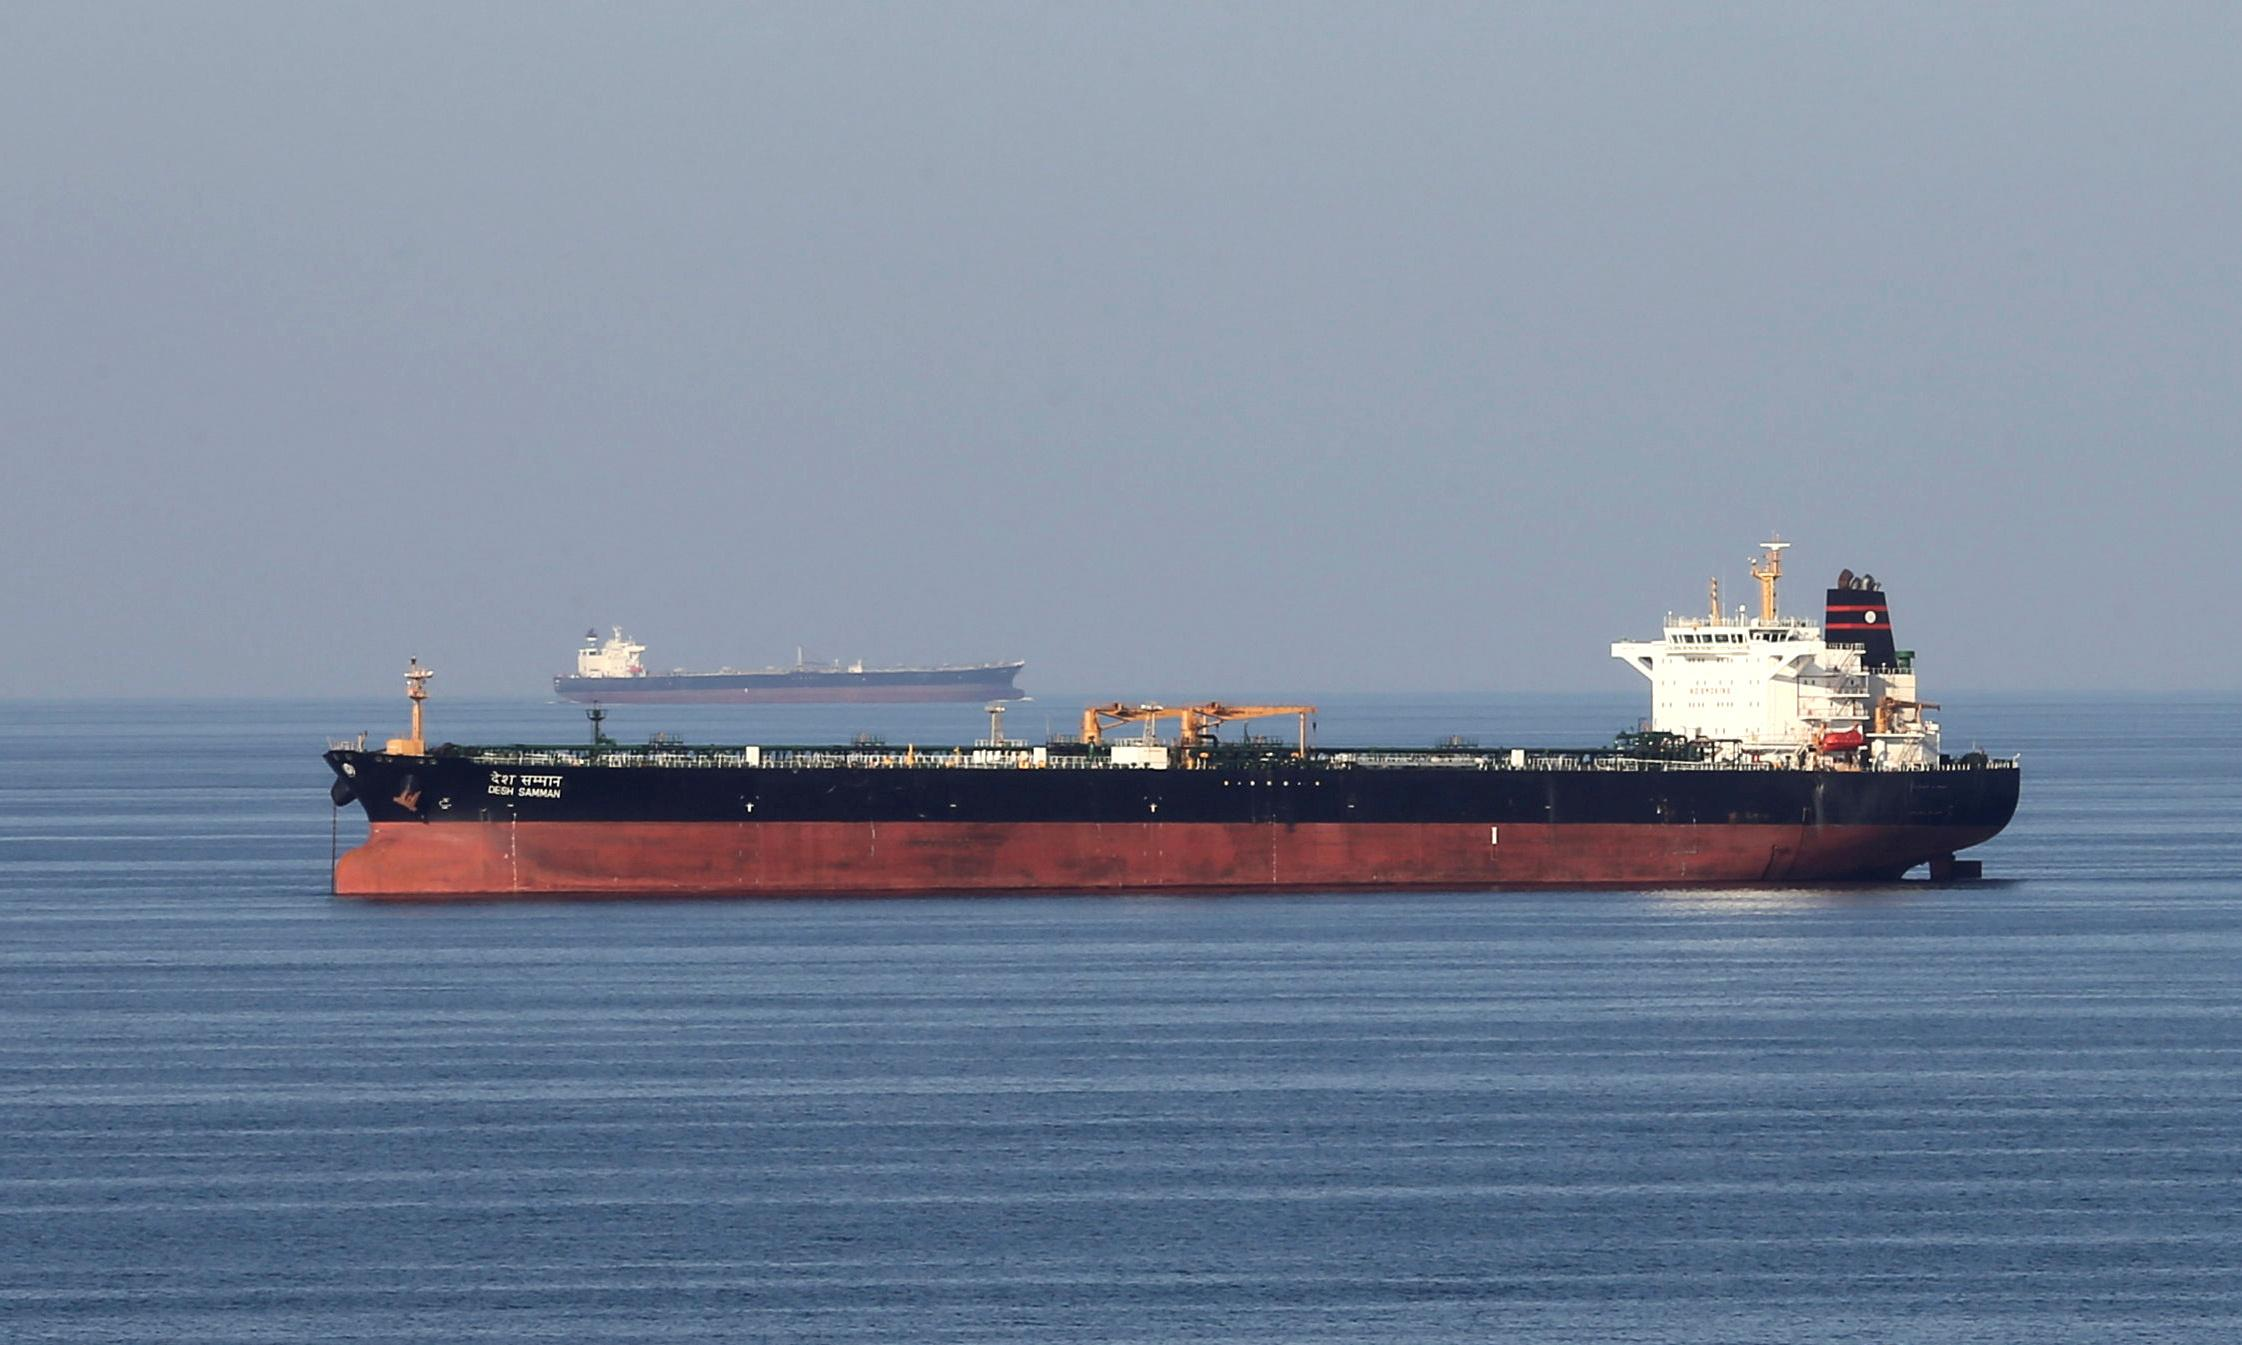 Concern grows over oil tanker last seen off Iran